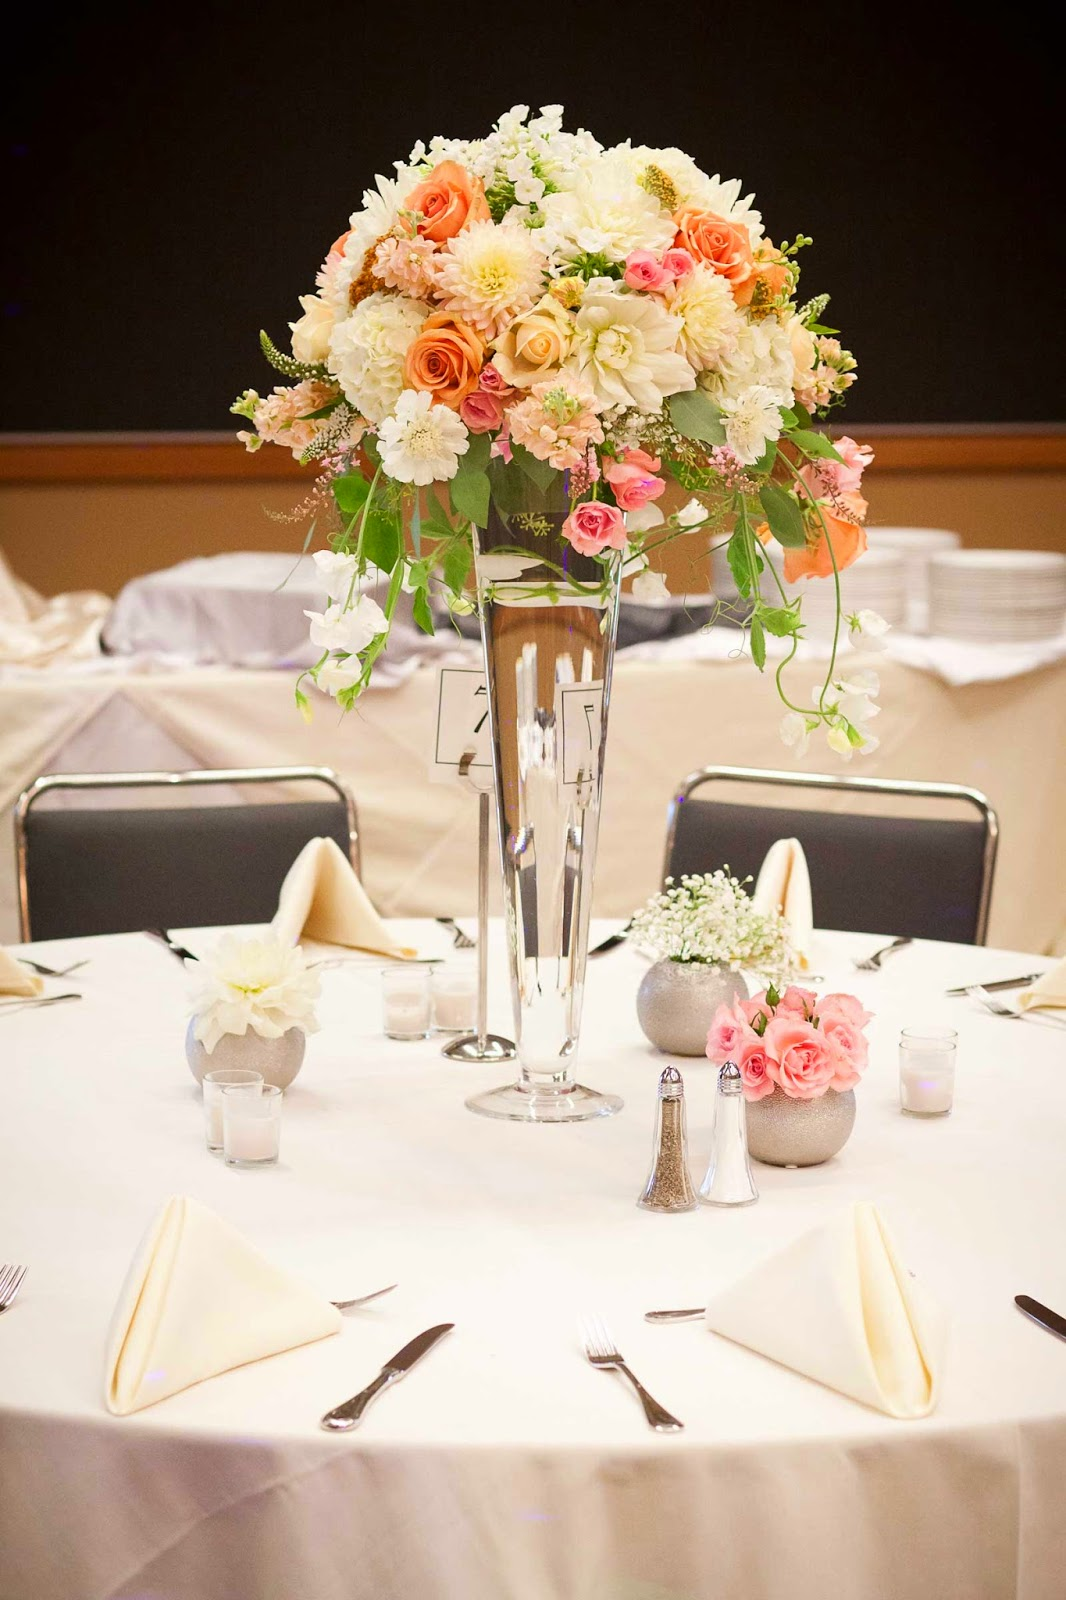 Best Wedding Centerpiece Ideas Diy Wedding Centerpieces Tall Wedding Centerpieces